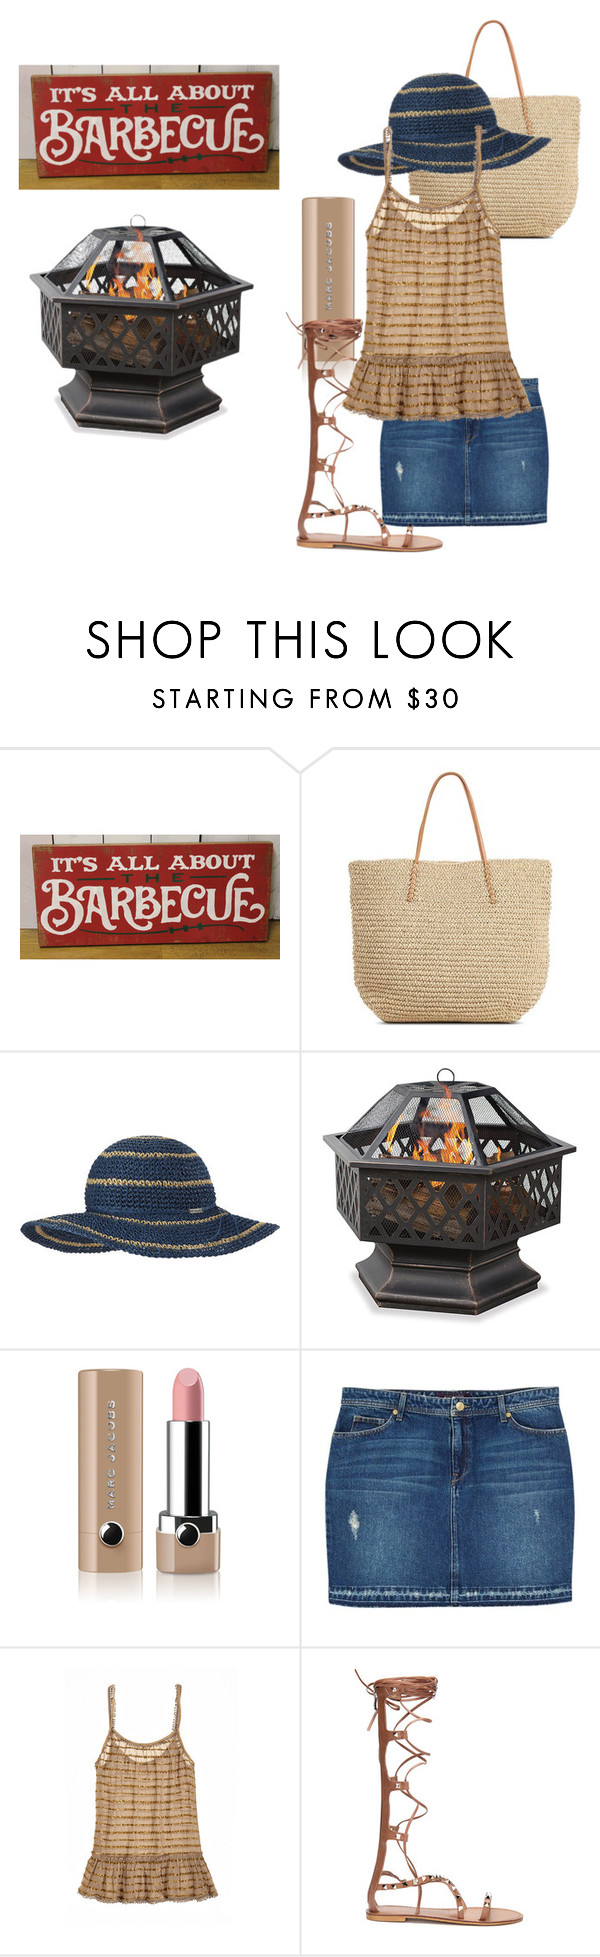 """""""yup"""" by keegz ❤ liked on Polyvore featuring interior, interiors, interior design, home, home decor, interior decorating, Target, Columbia, Improvements and Marc Jacobs"""